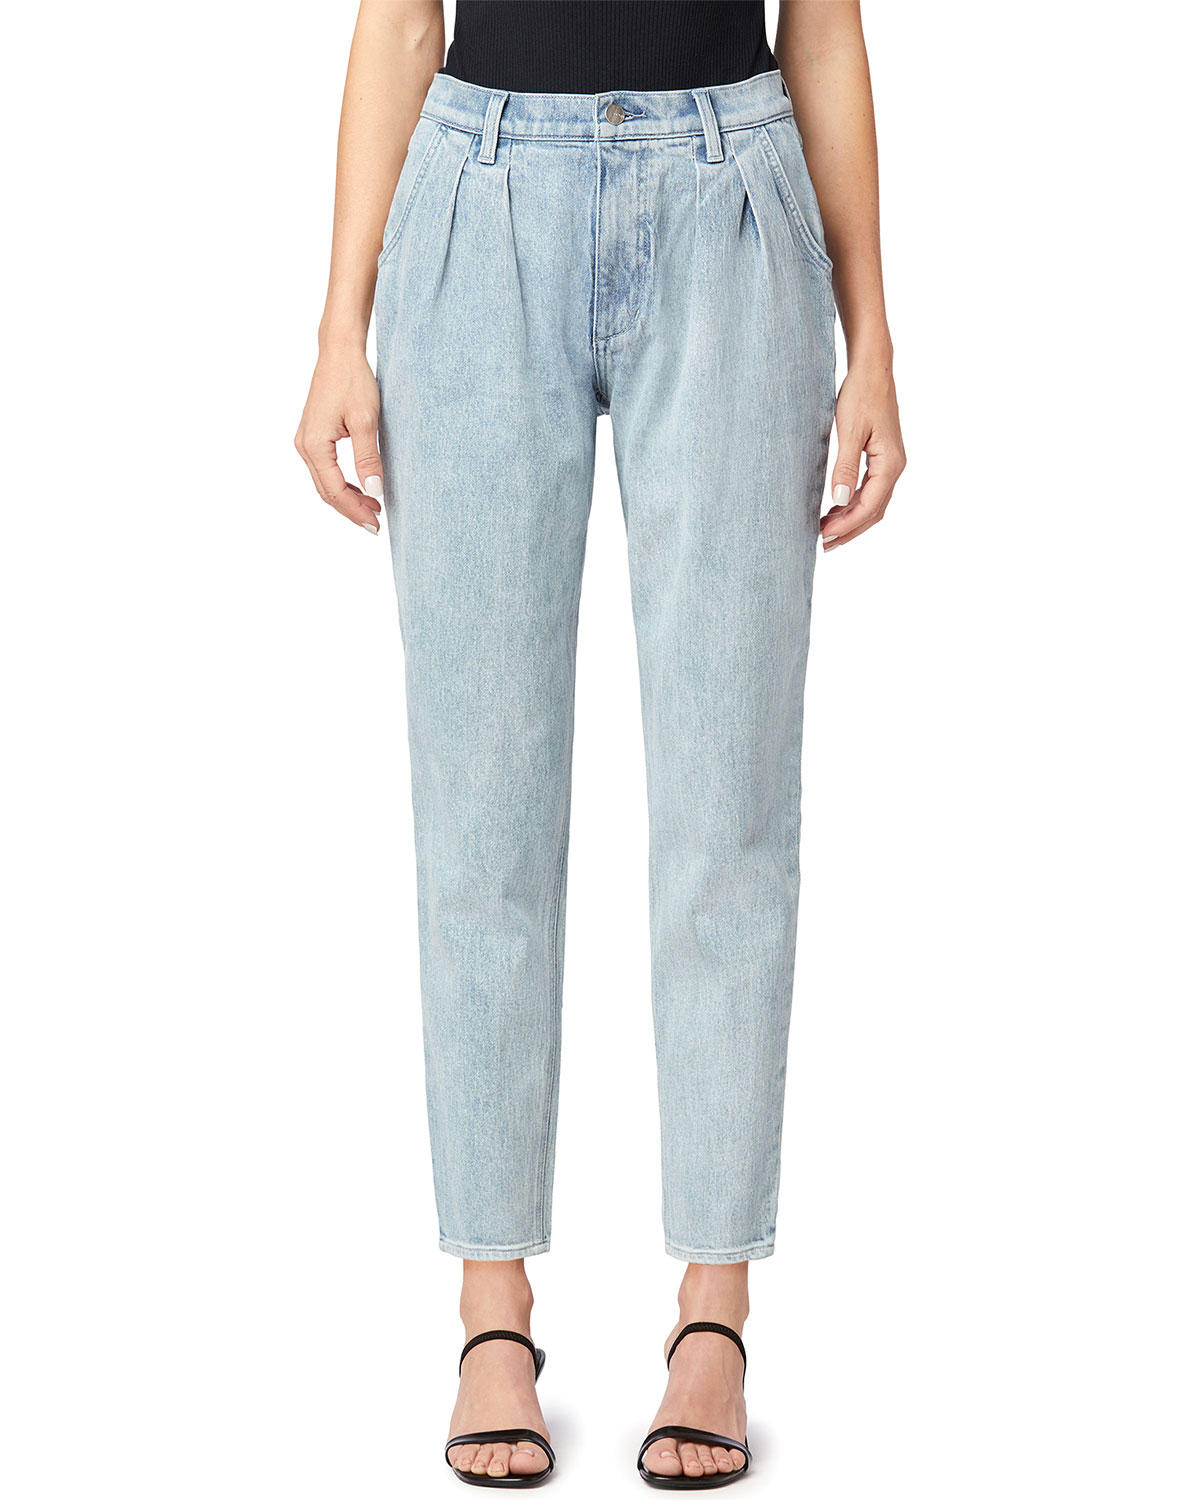 The Peggy Straight-Leg Jeans